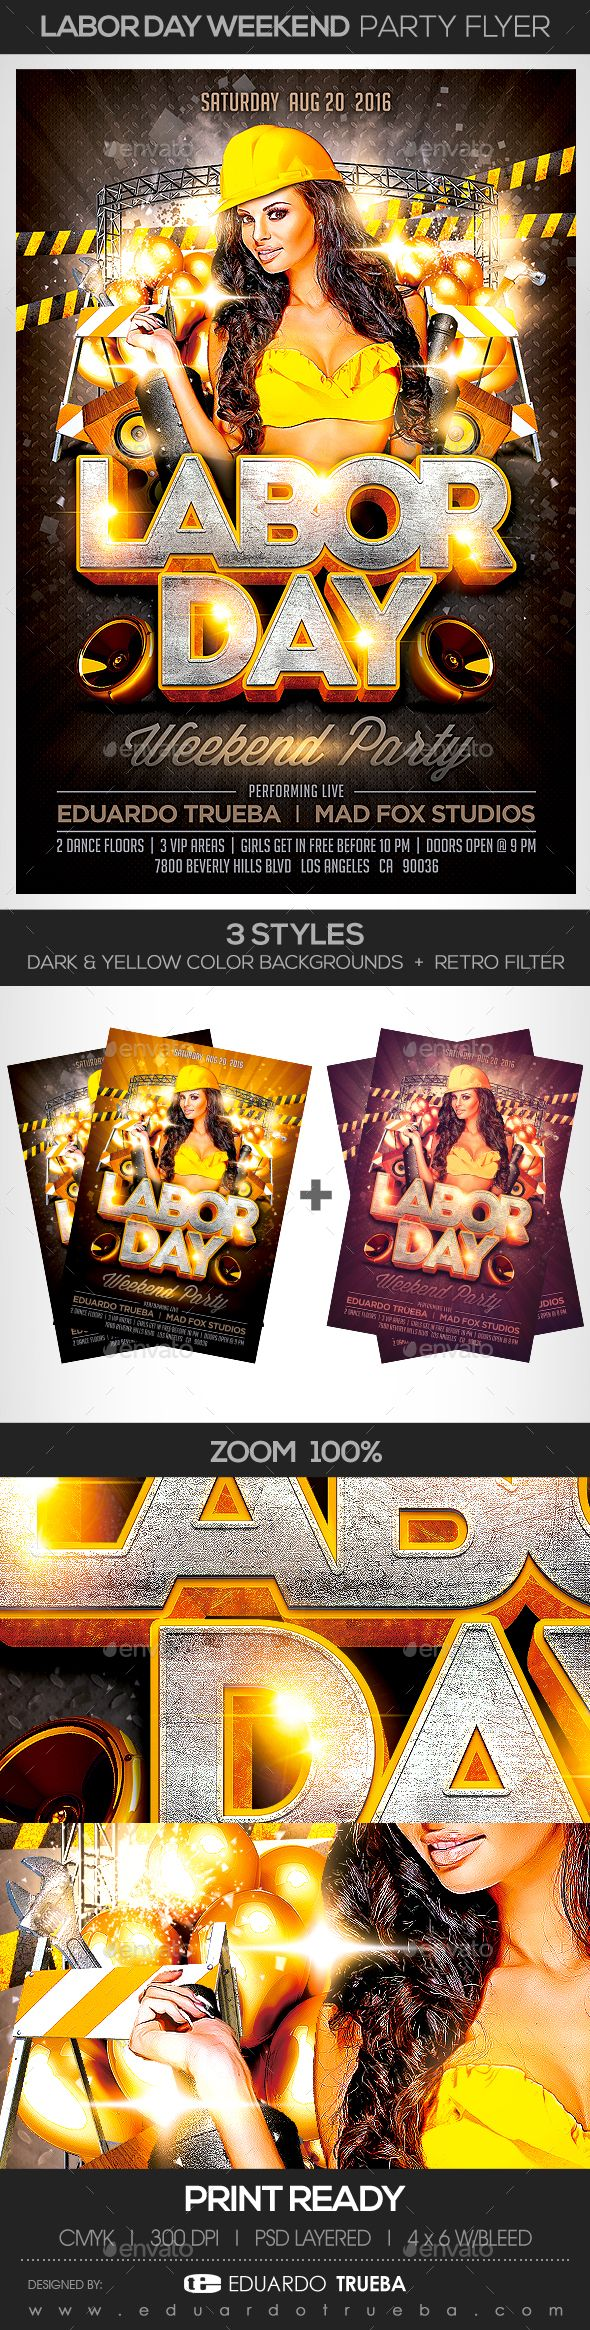 Labor Day Weekend Party Flyer | Party flyer, Flyer template and ...